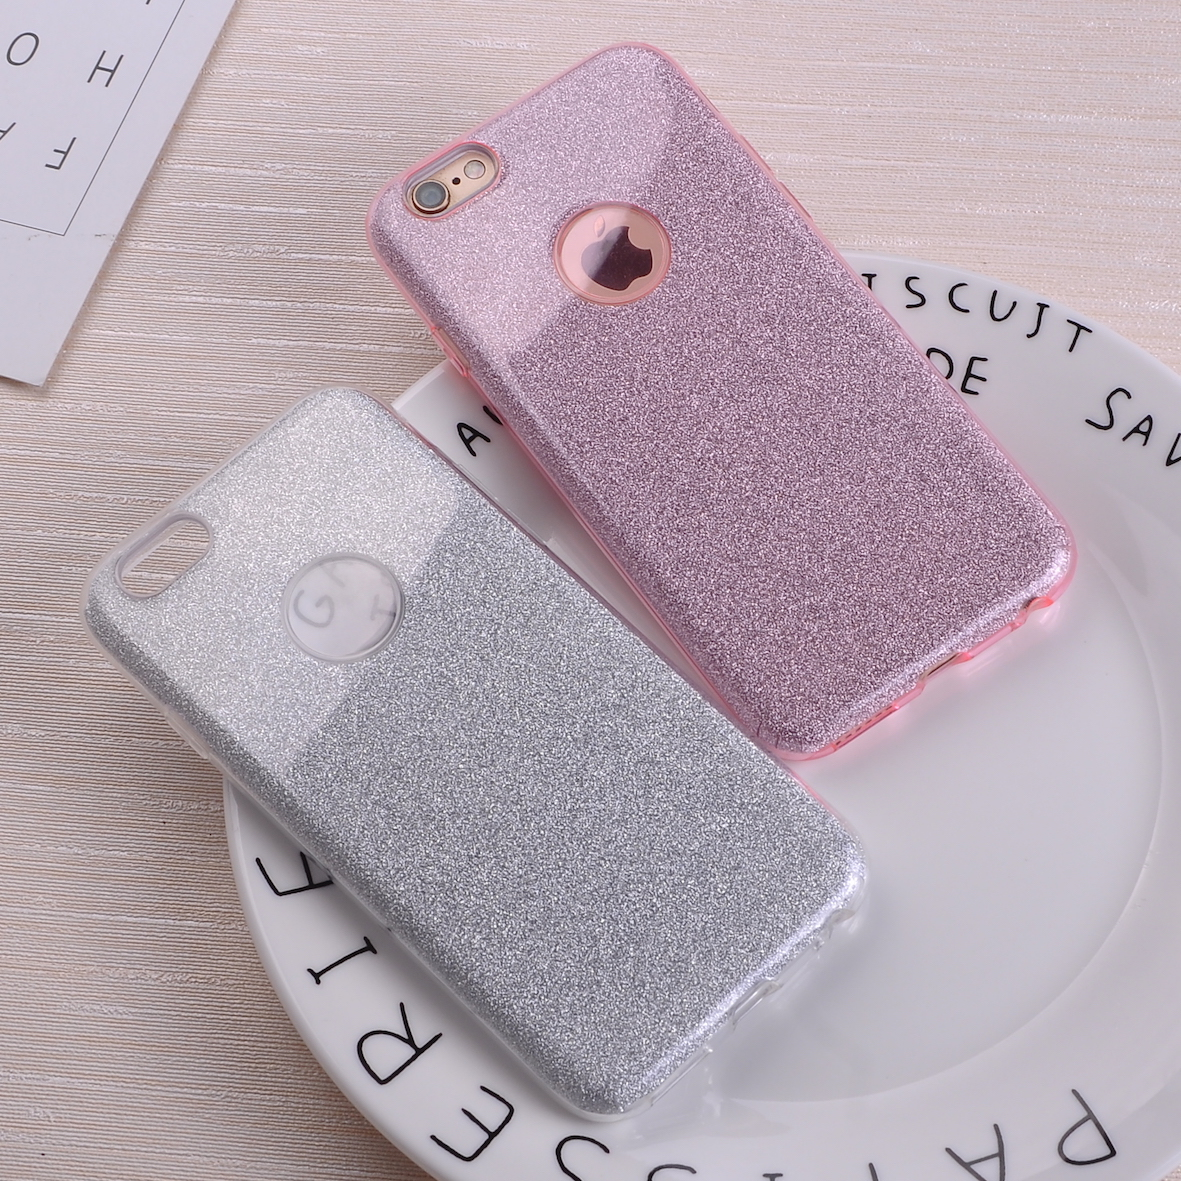 Fashion Luxury Glitter Bling Bling Paillette Soft Phone Fundas Coque For iPhone 7 7Plus 6 6S 6Plus(China)